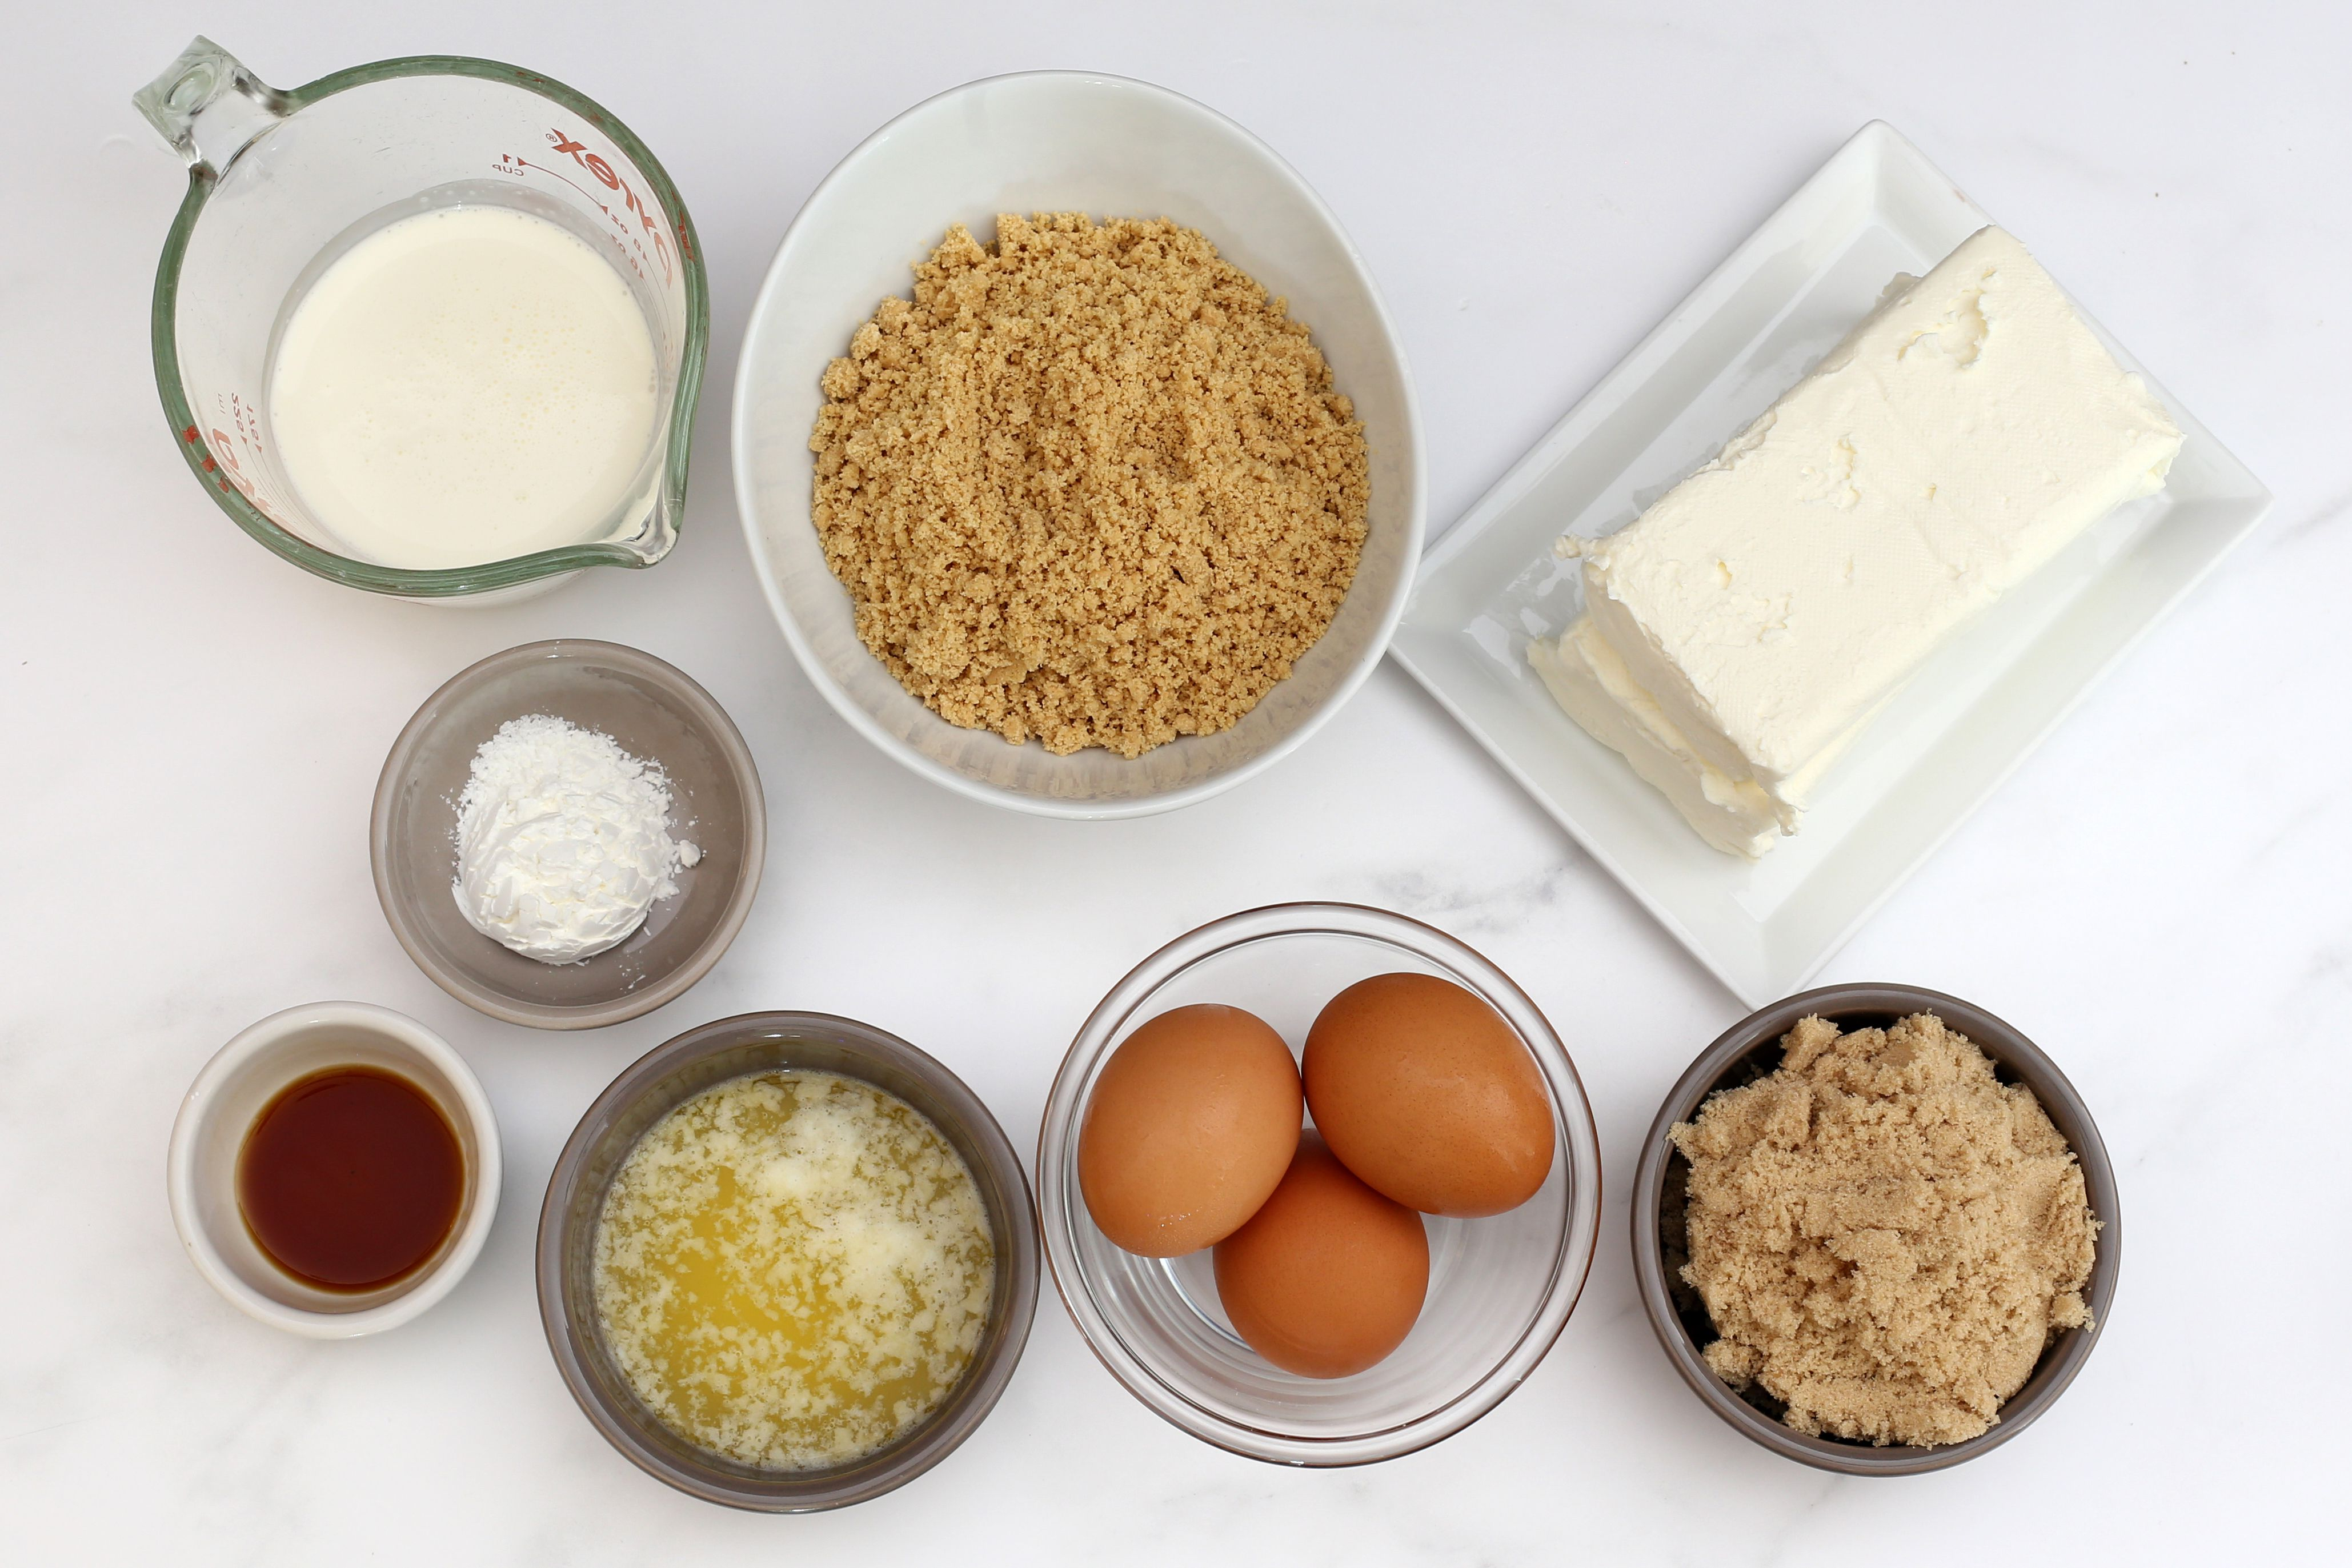 ingredients for instant pot cheesecake